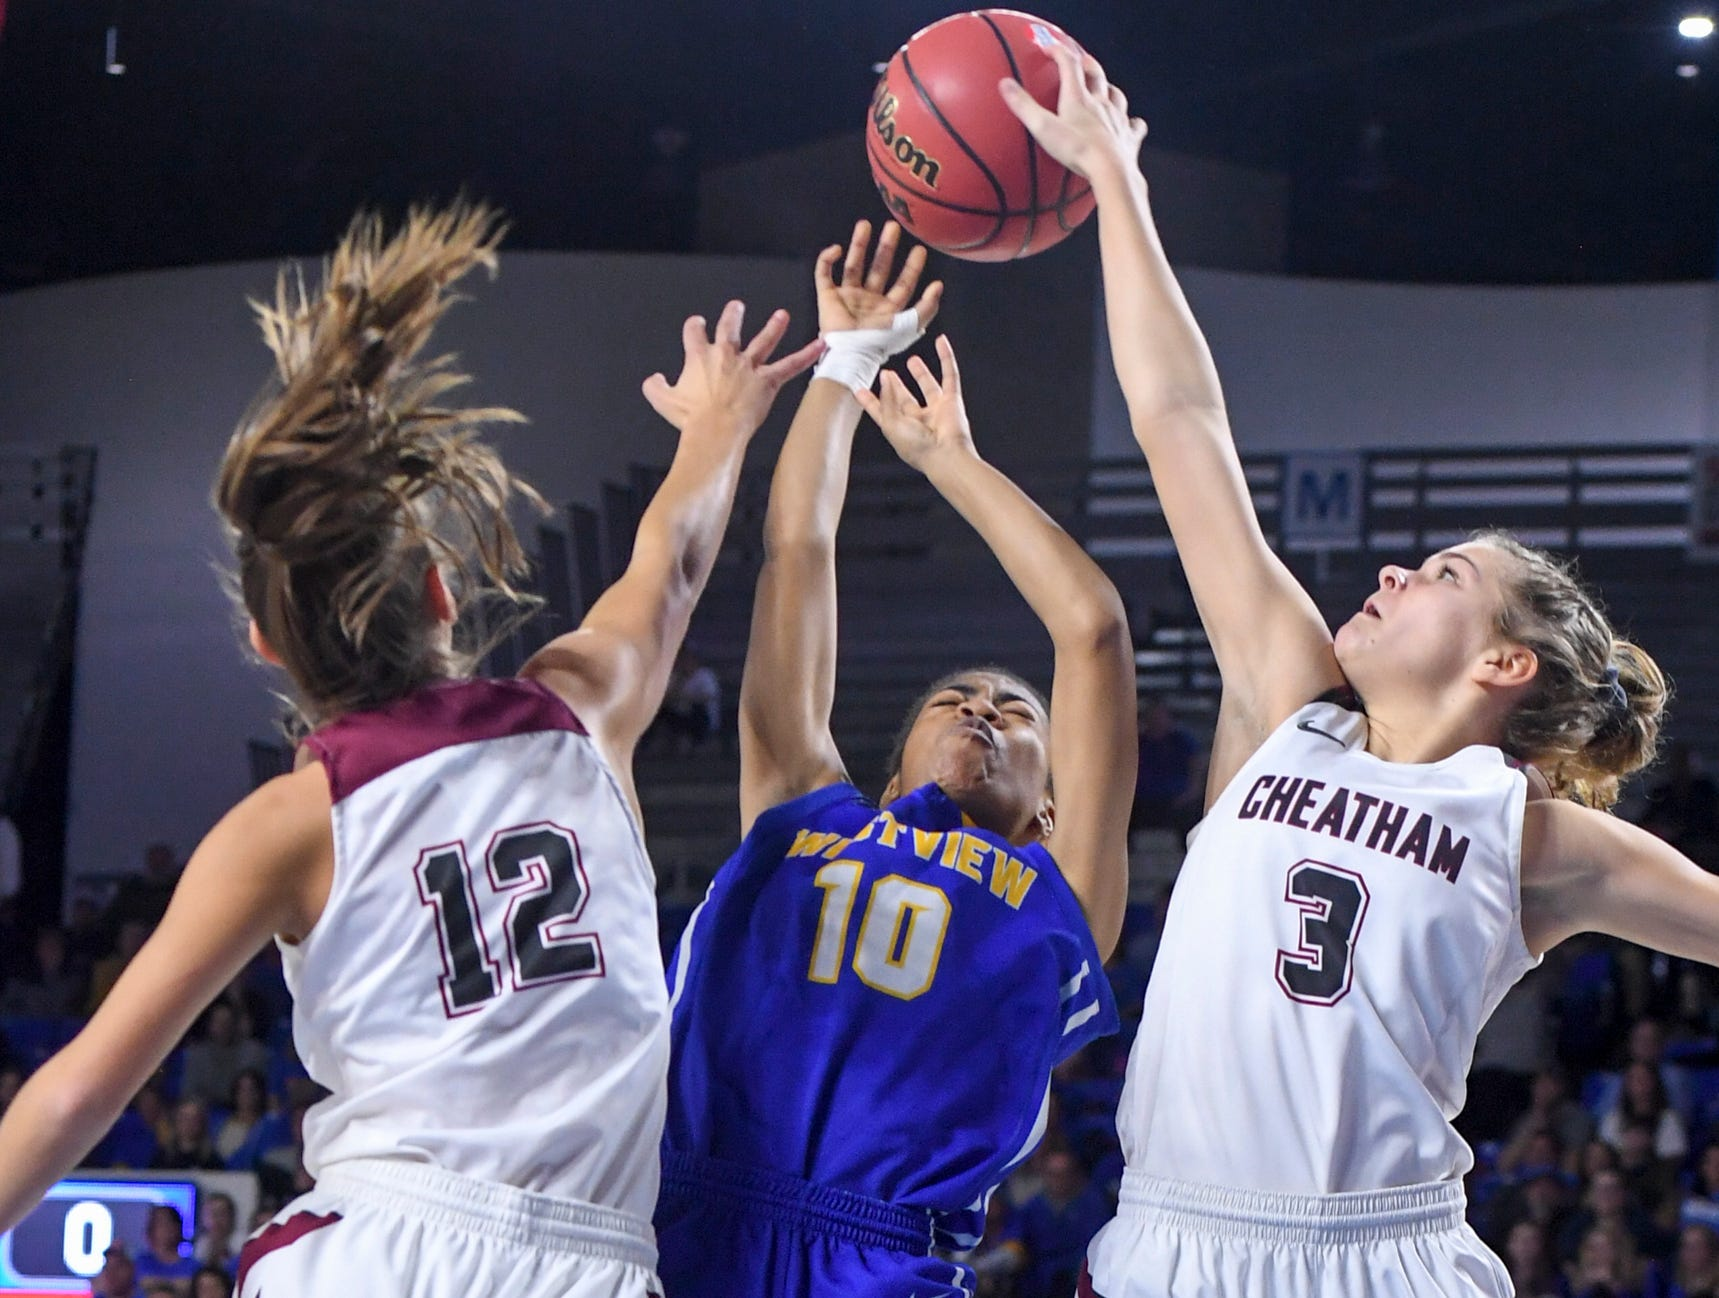 Westview's Zanasha Gadlen (10) goes up for a shot between Cheatham County's Jorden Bumpus (12) and Cheatham County's Emmy Nelson (3) during their Class AA championship game, Saturday, March 9, 2019, in Murfreesboro.